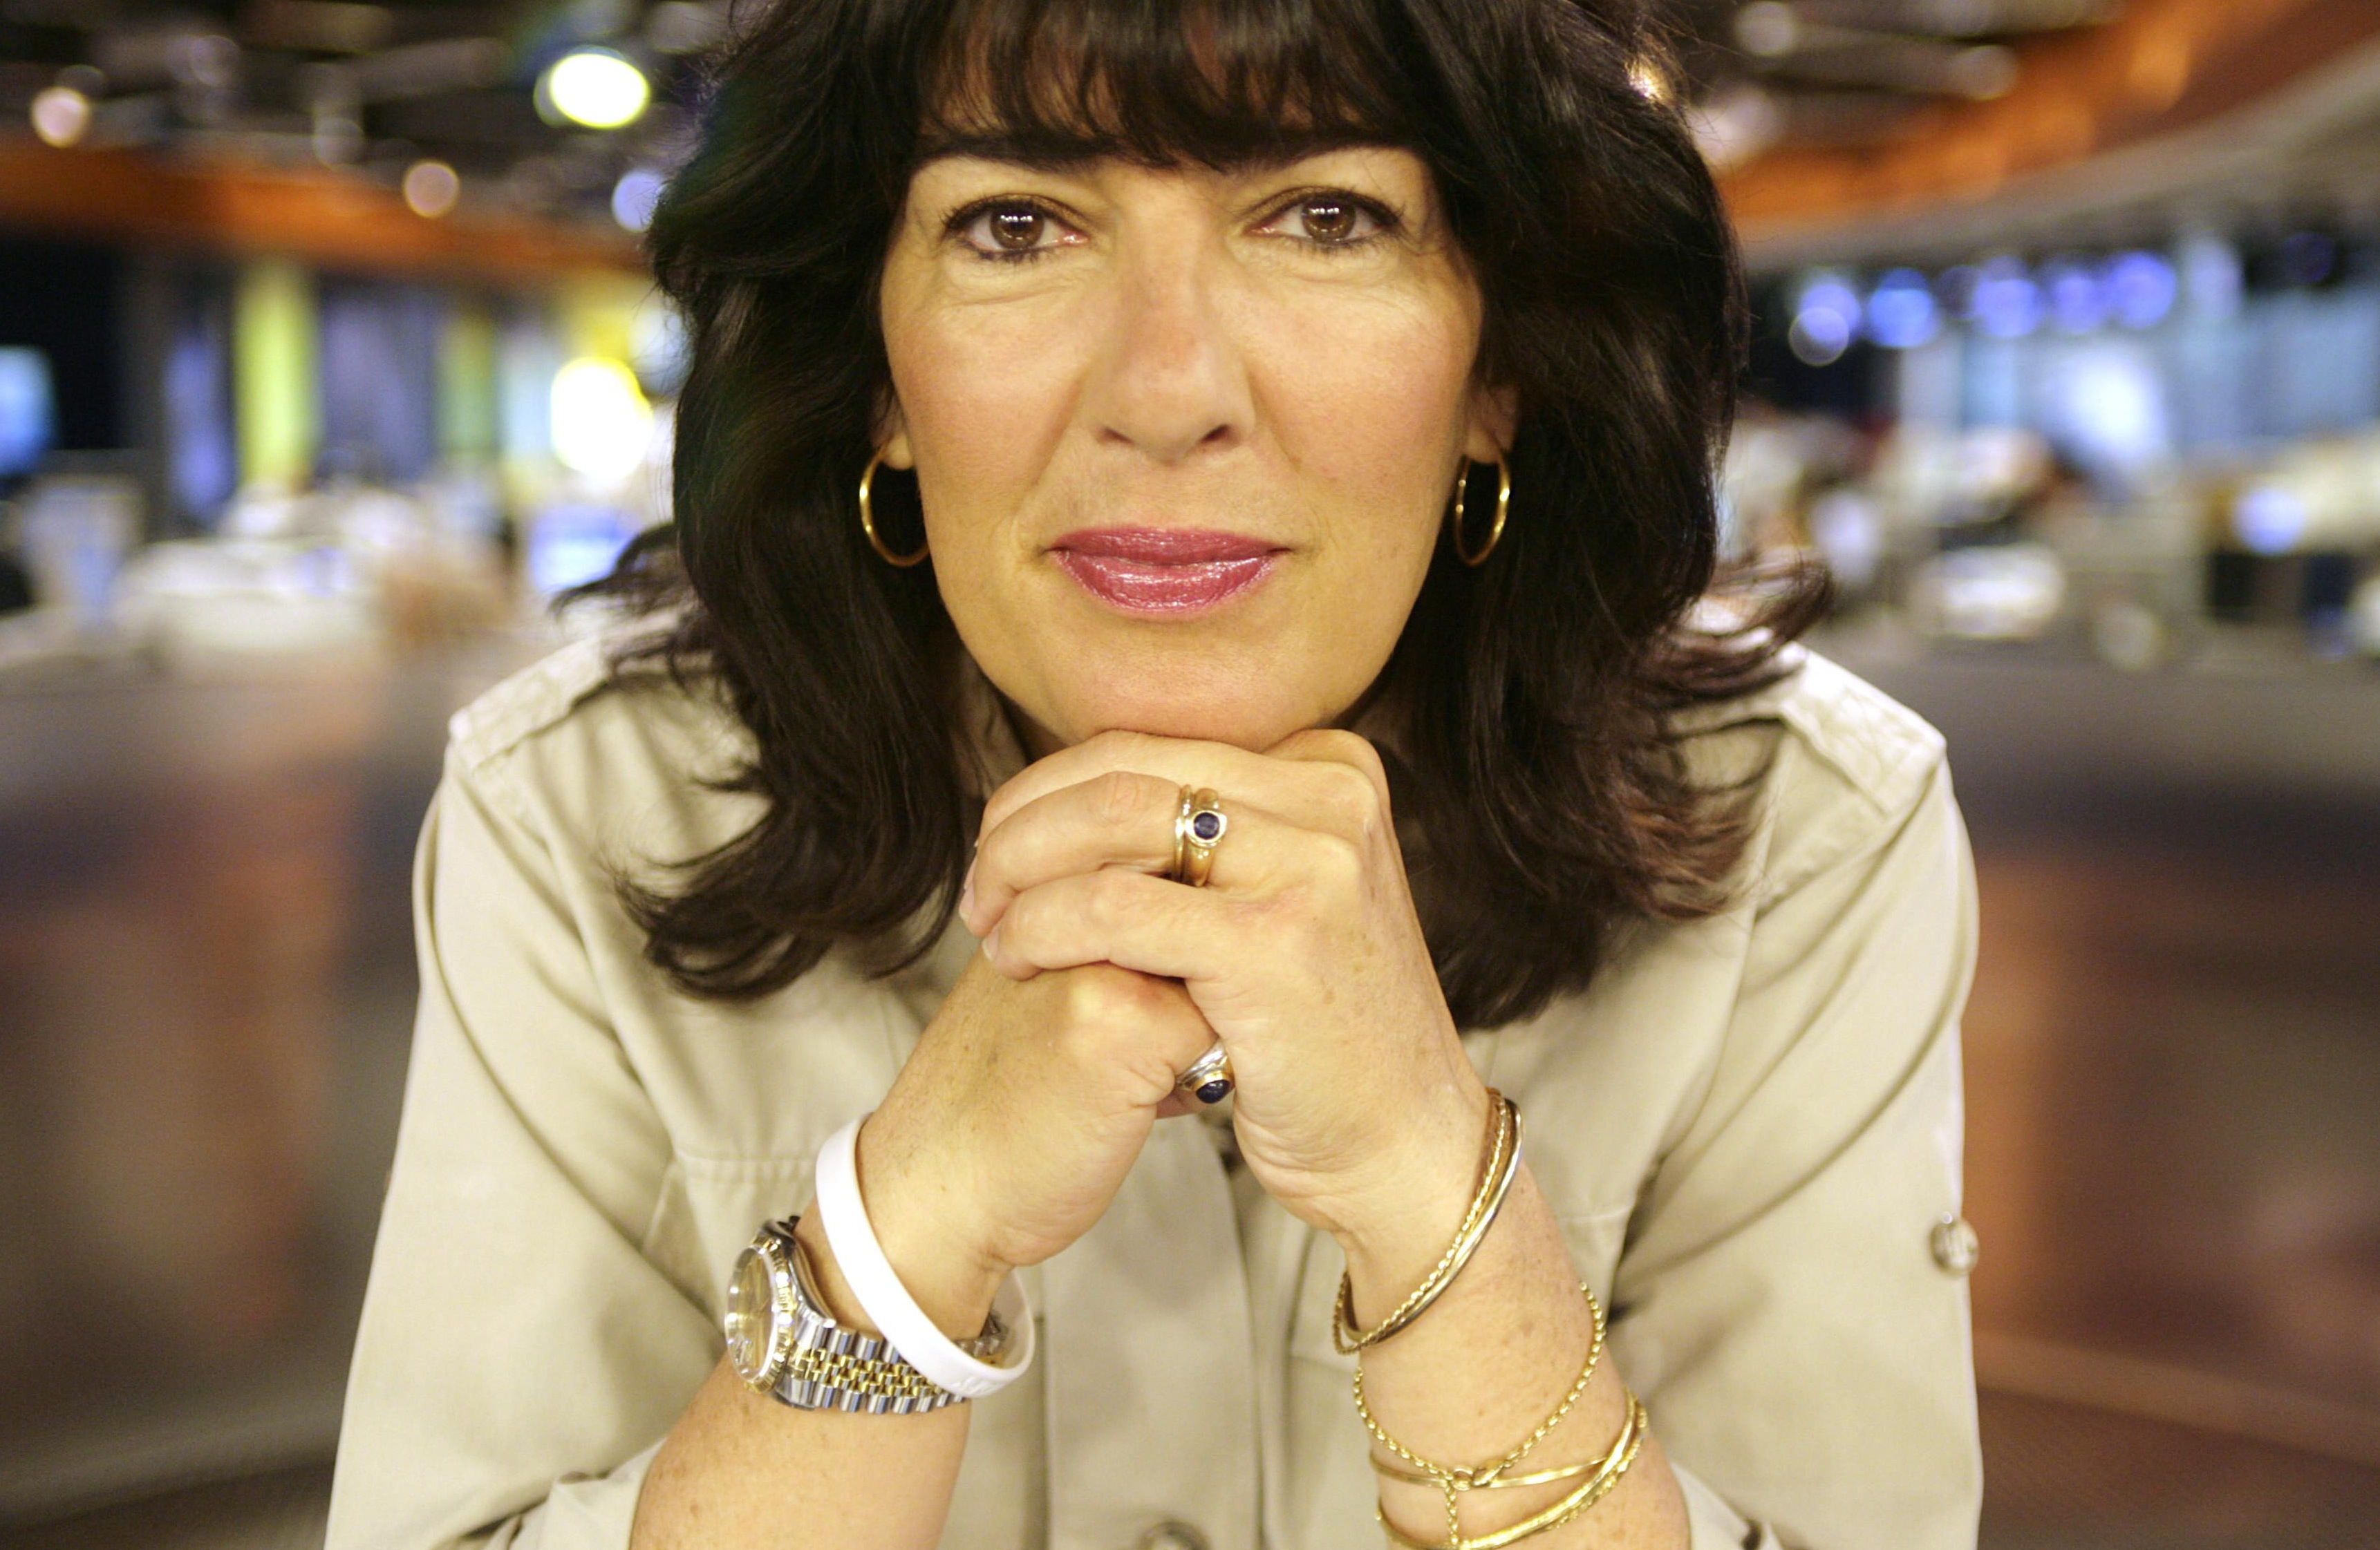 Christiane Amanpour, CNN's chief international correspondent at CNN's london studio. (Photo by Avery Cunliffe/Photoshot/Getty Images)